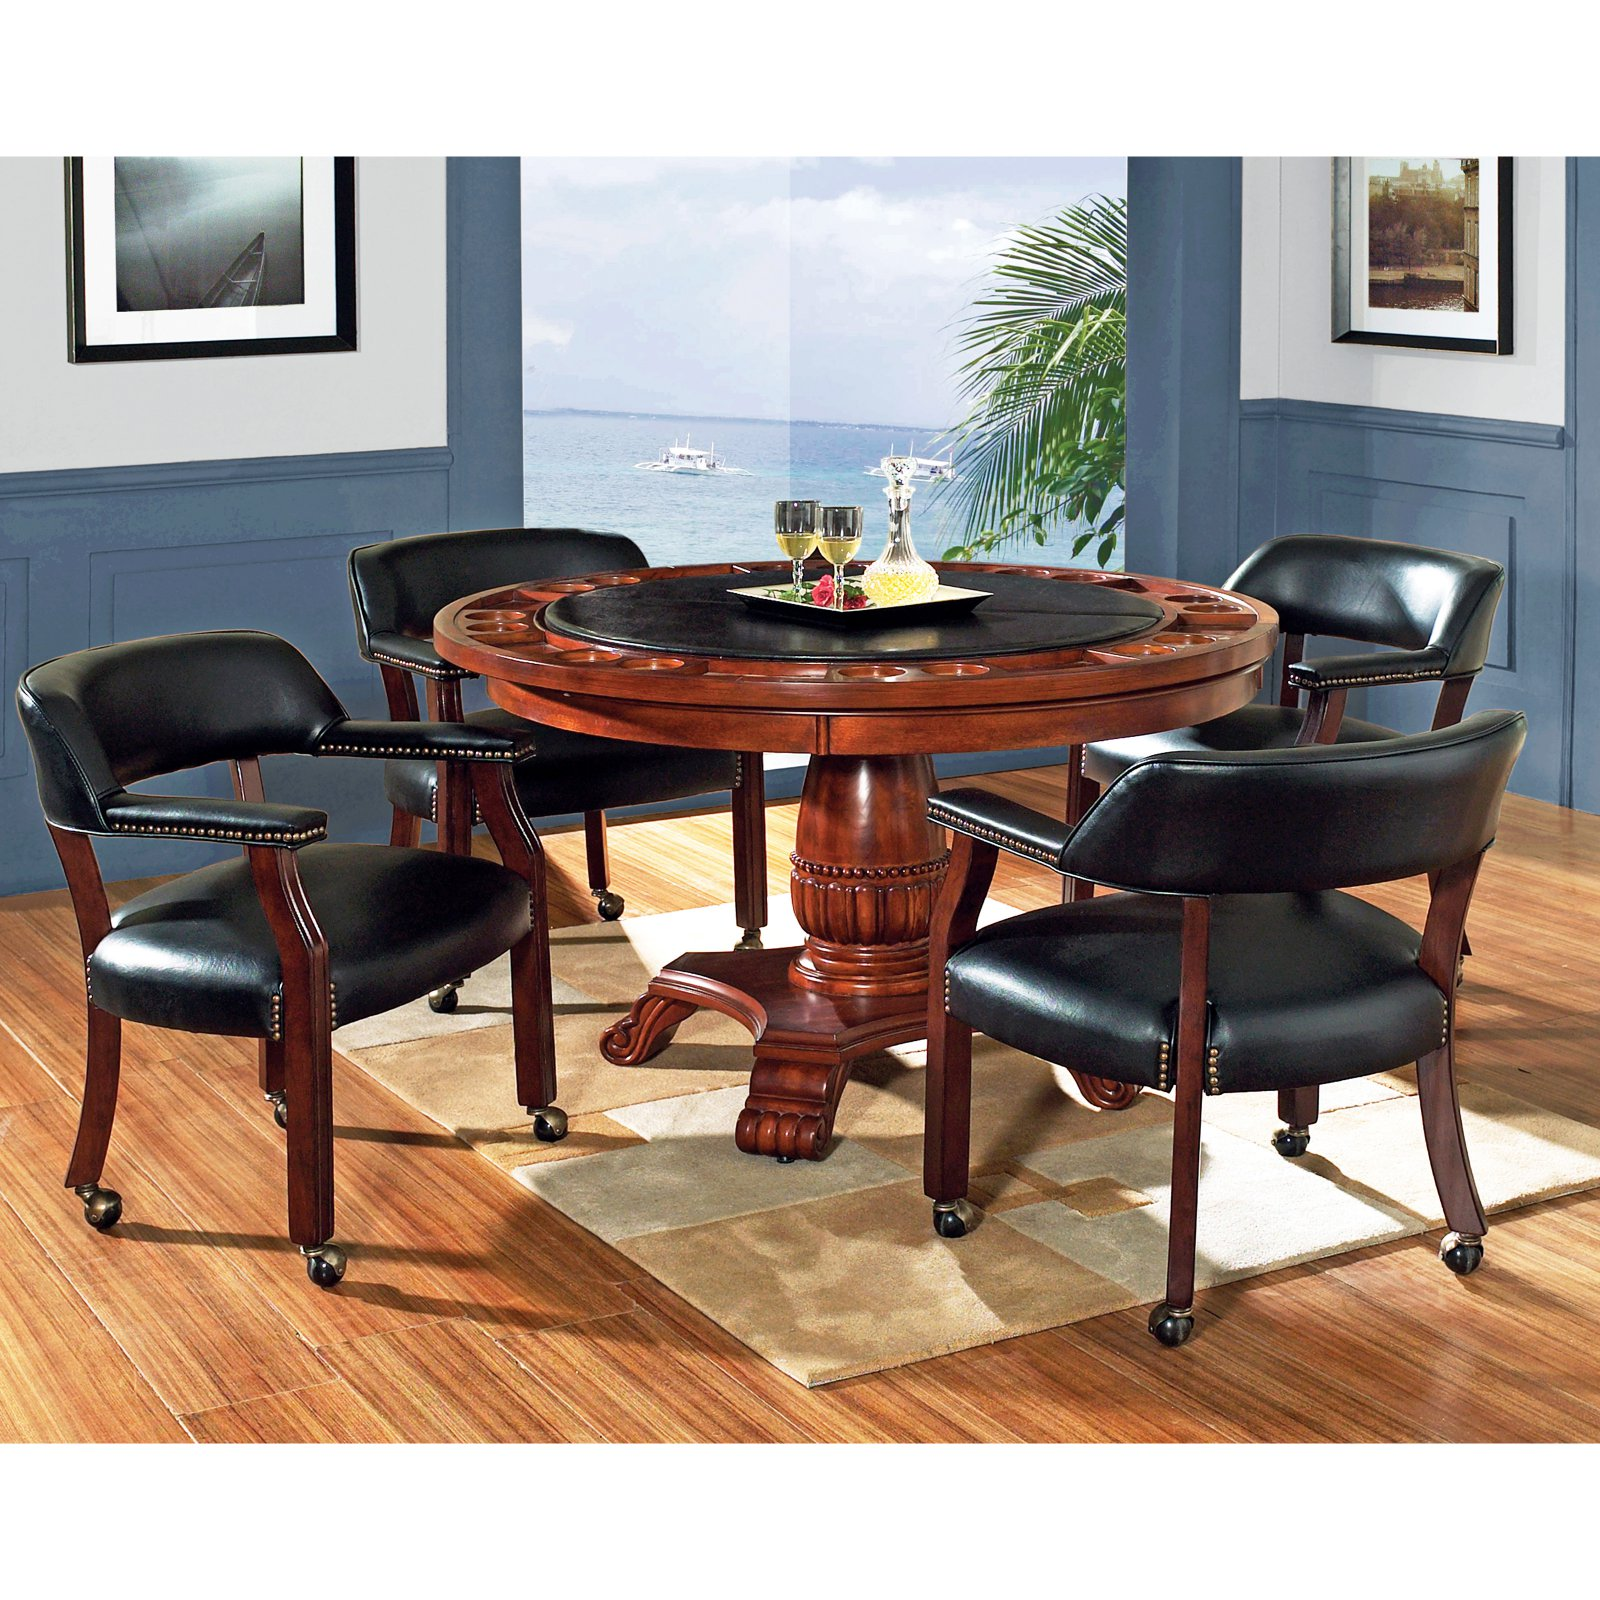 poker table chairs with casters revolving chair steel base steve silver 5 piece tournament dining game set caster cherry walmart com